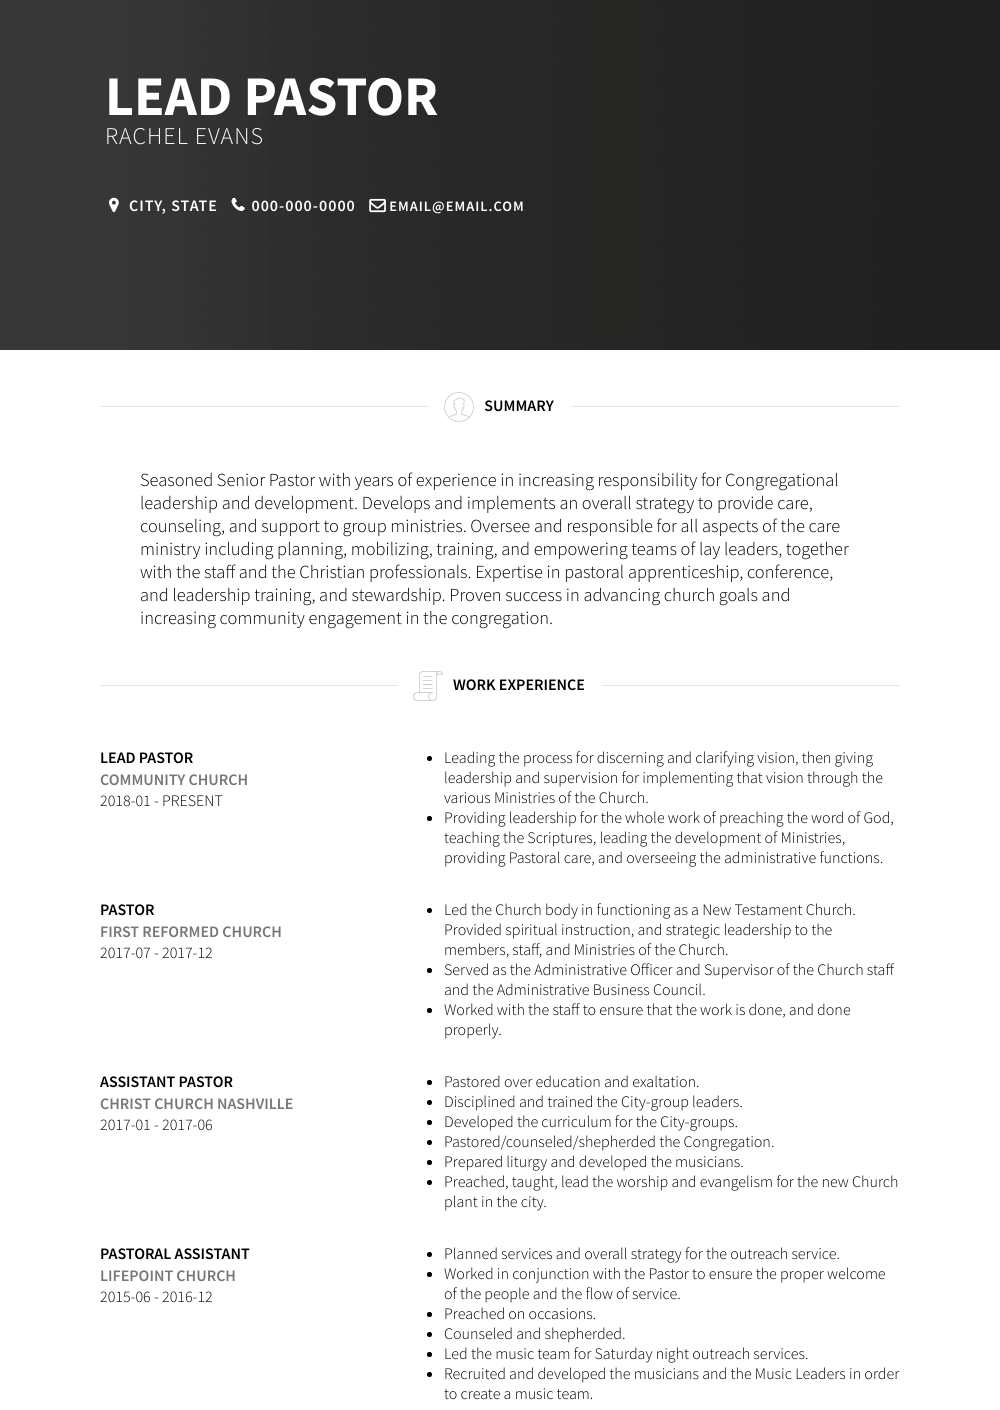 Lead Pastor Resume Sample and Template